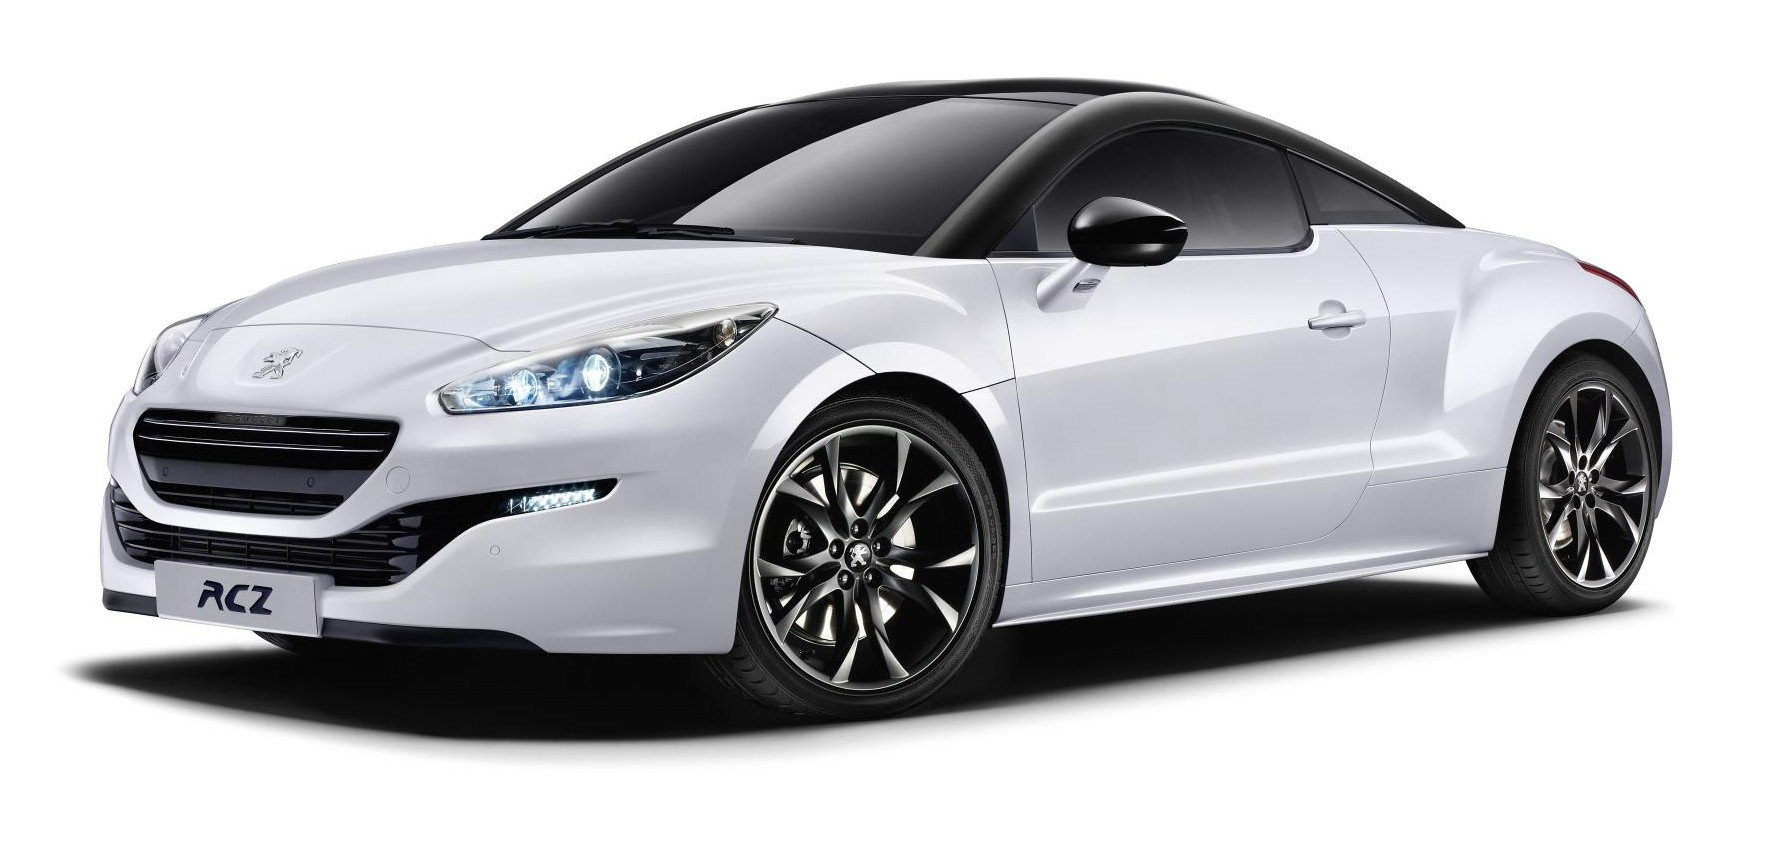 peugeot rcz magnetic exudes positive allure. Black Bedroom Furniture Sets. Home Design Ideas